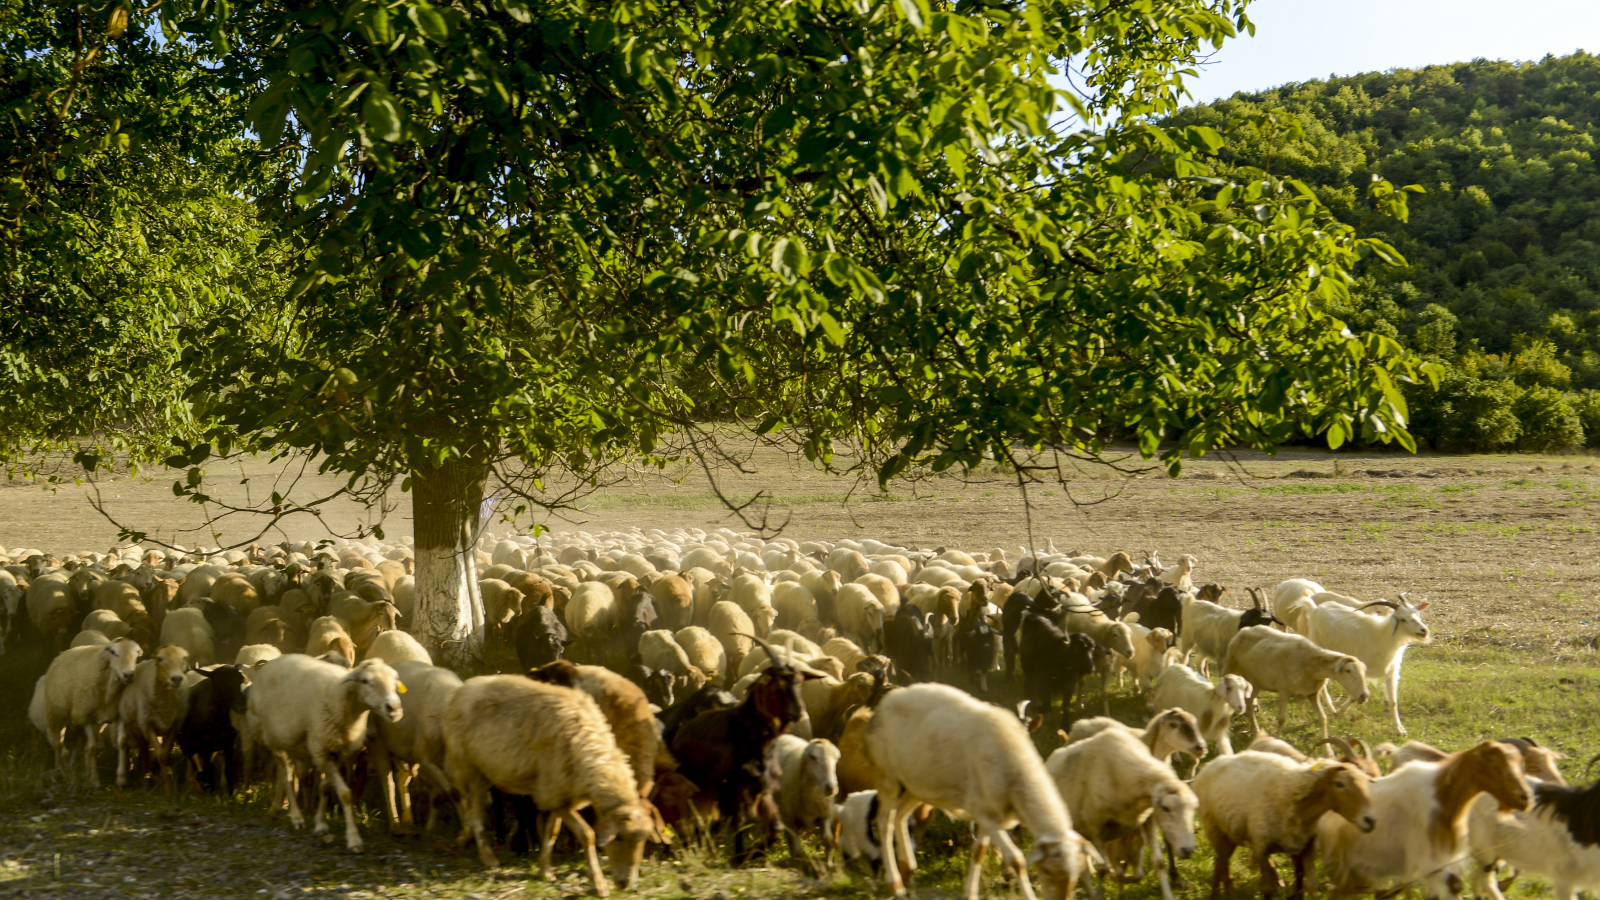 Good, clean and fair  food: How the EU supports agriculture and biodiversity in Azerbaijan